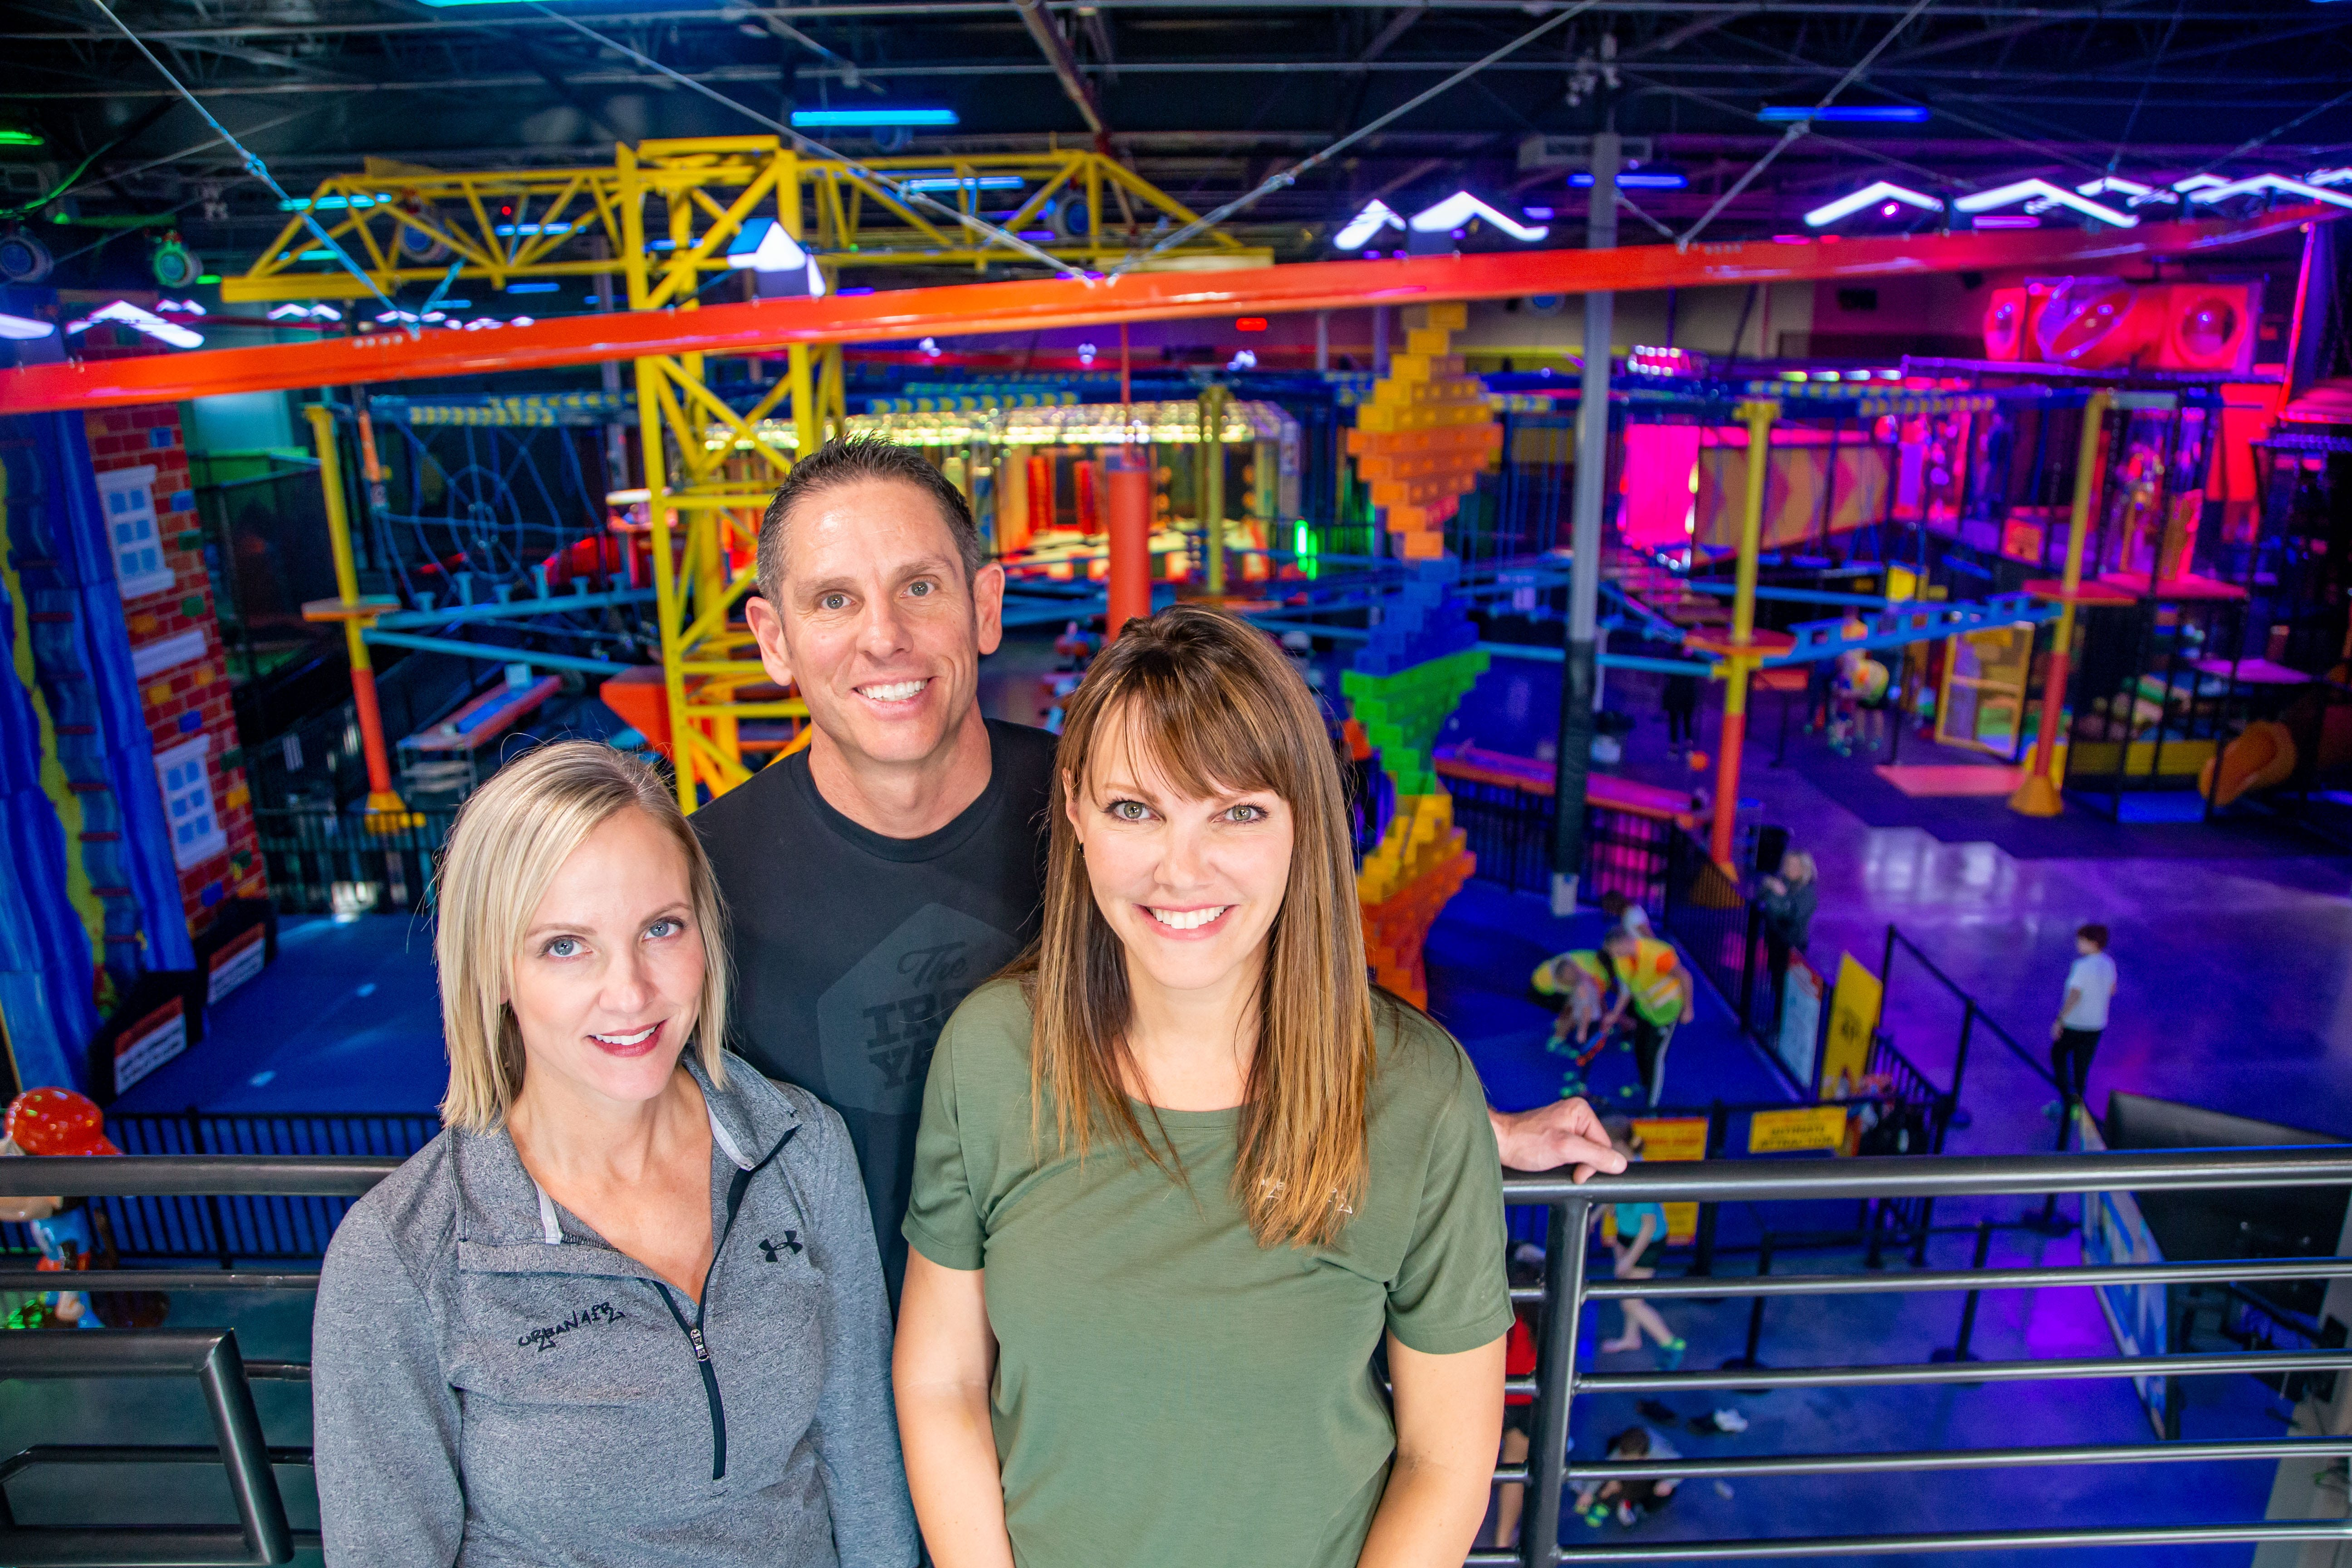 Urban Air Adventure Park opens in Ankeny